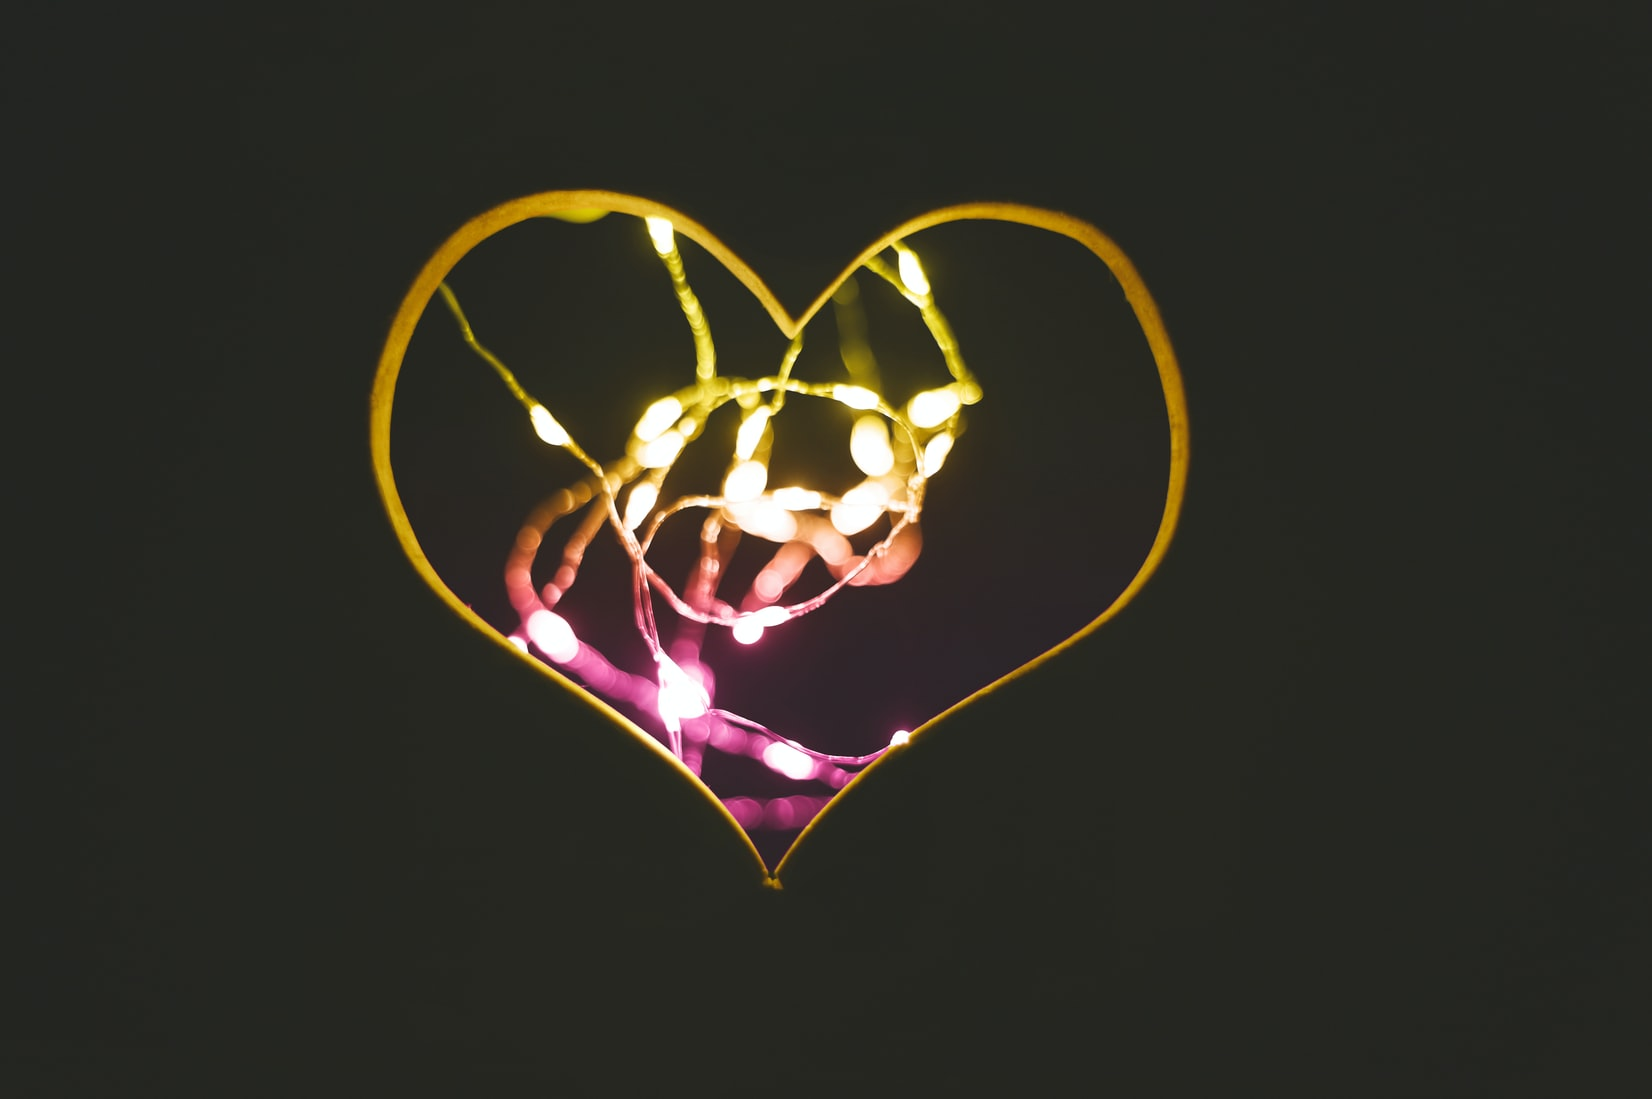 Lit-up heart; the heart wants what the heart wants; find the job you want following your own personal preferences